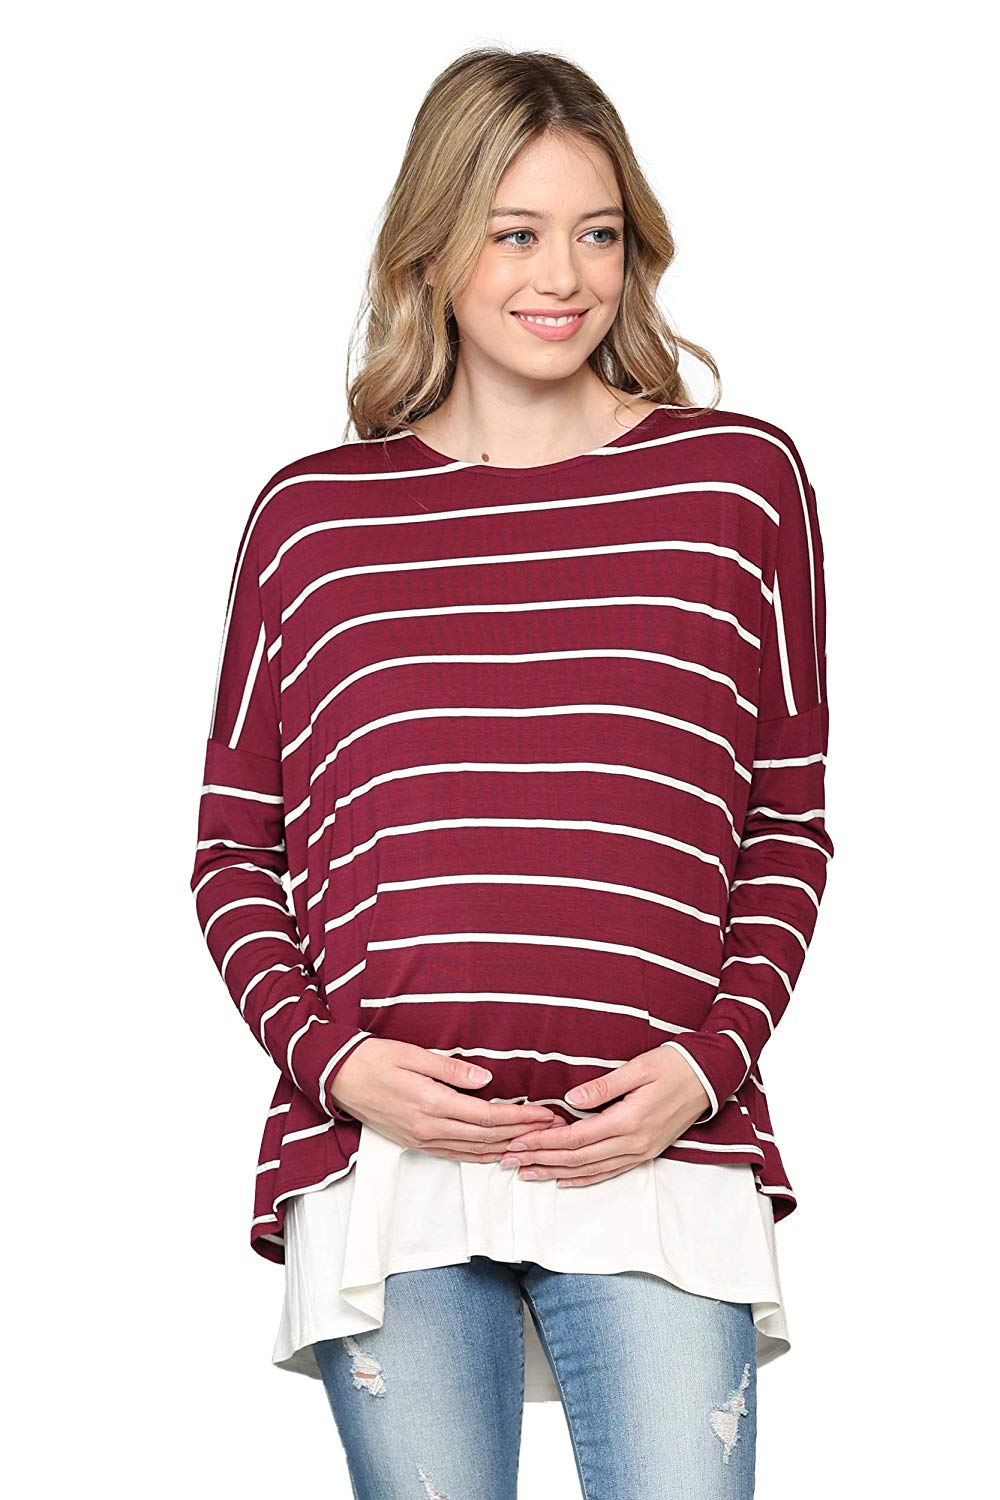 Striped Maternity and Nursing Tunic Top - Mommylicious